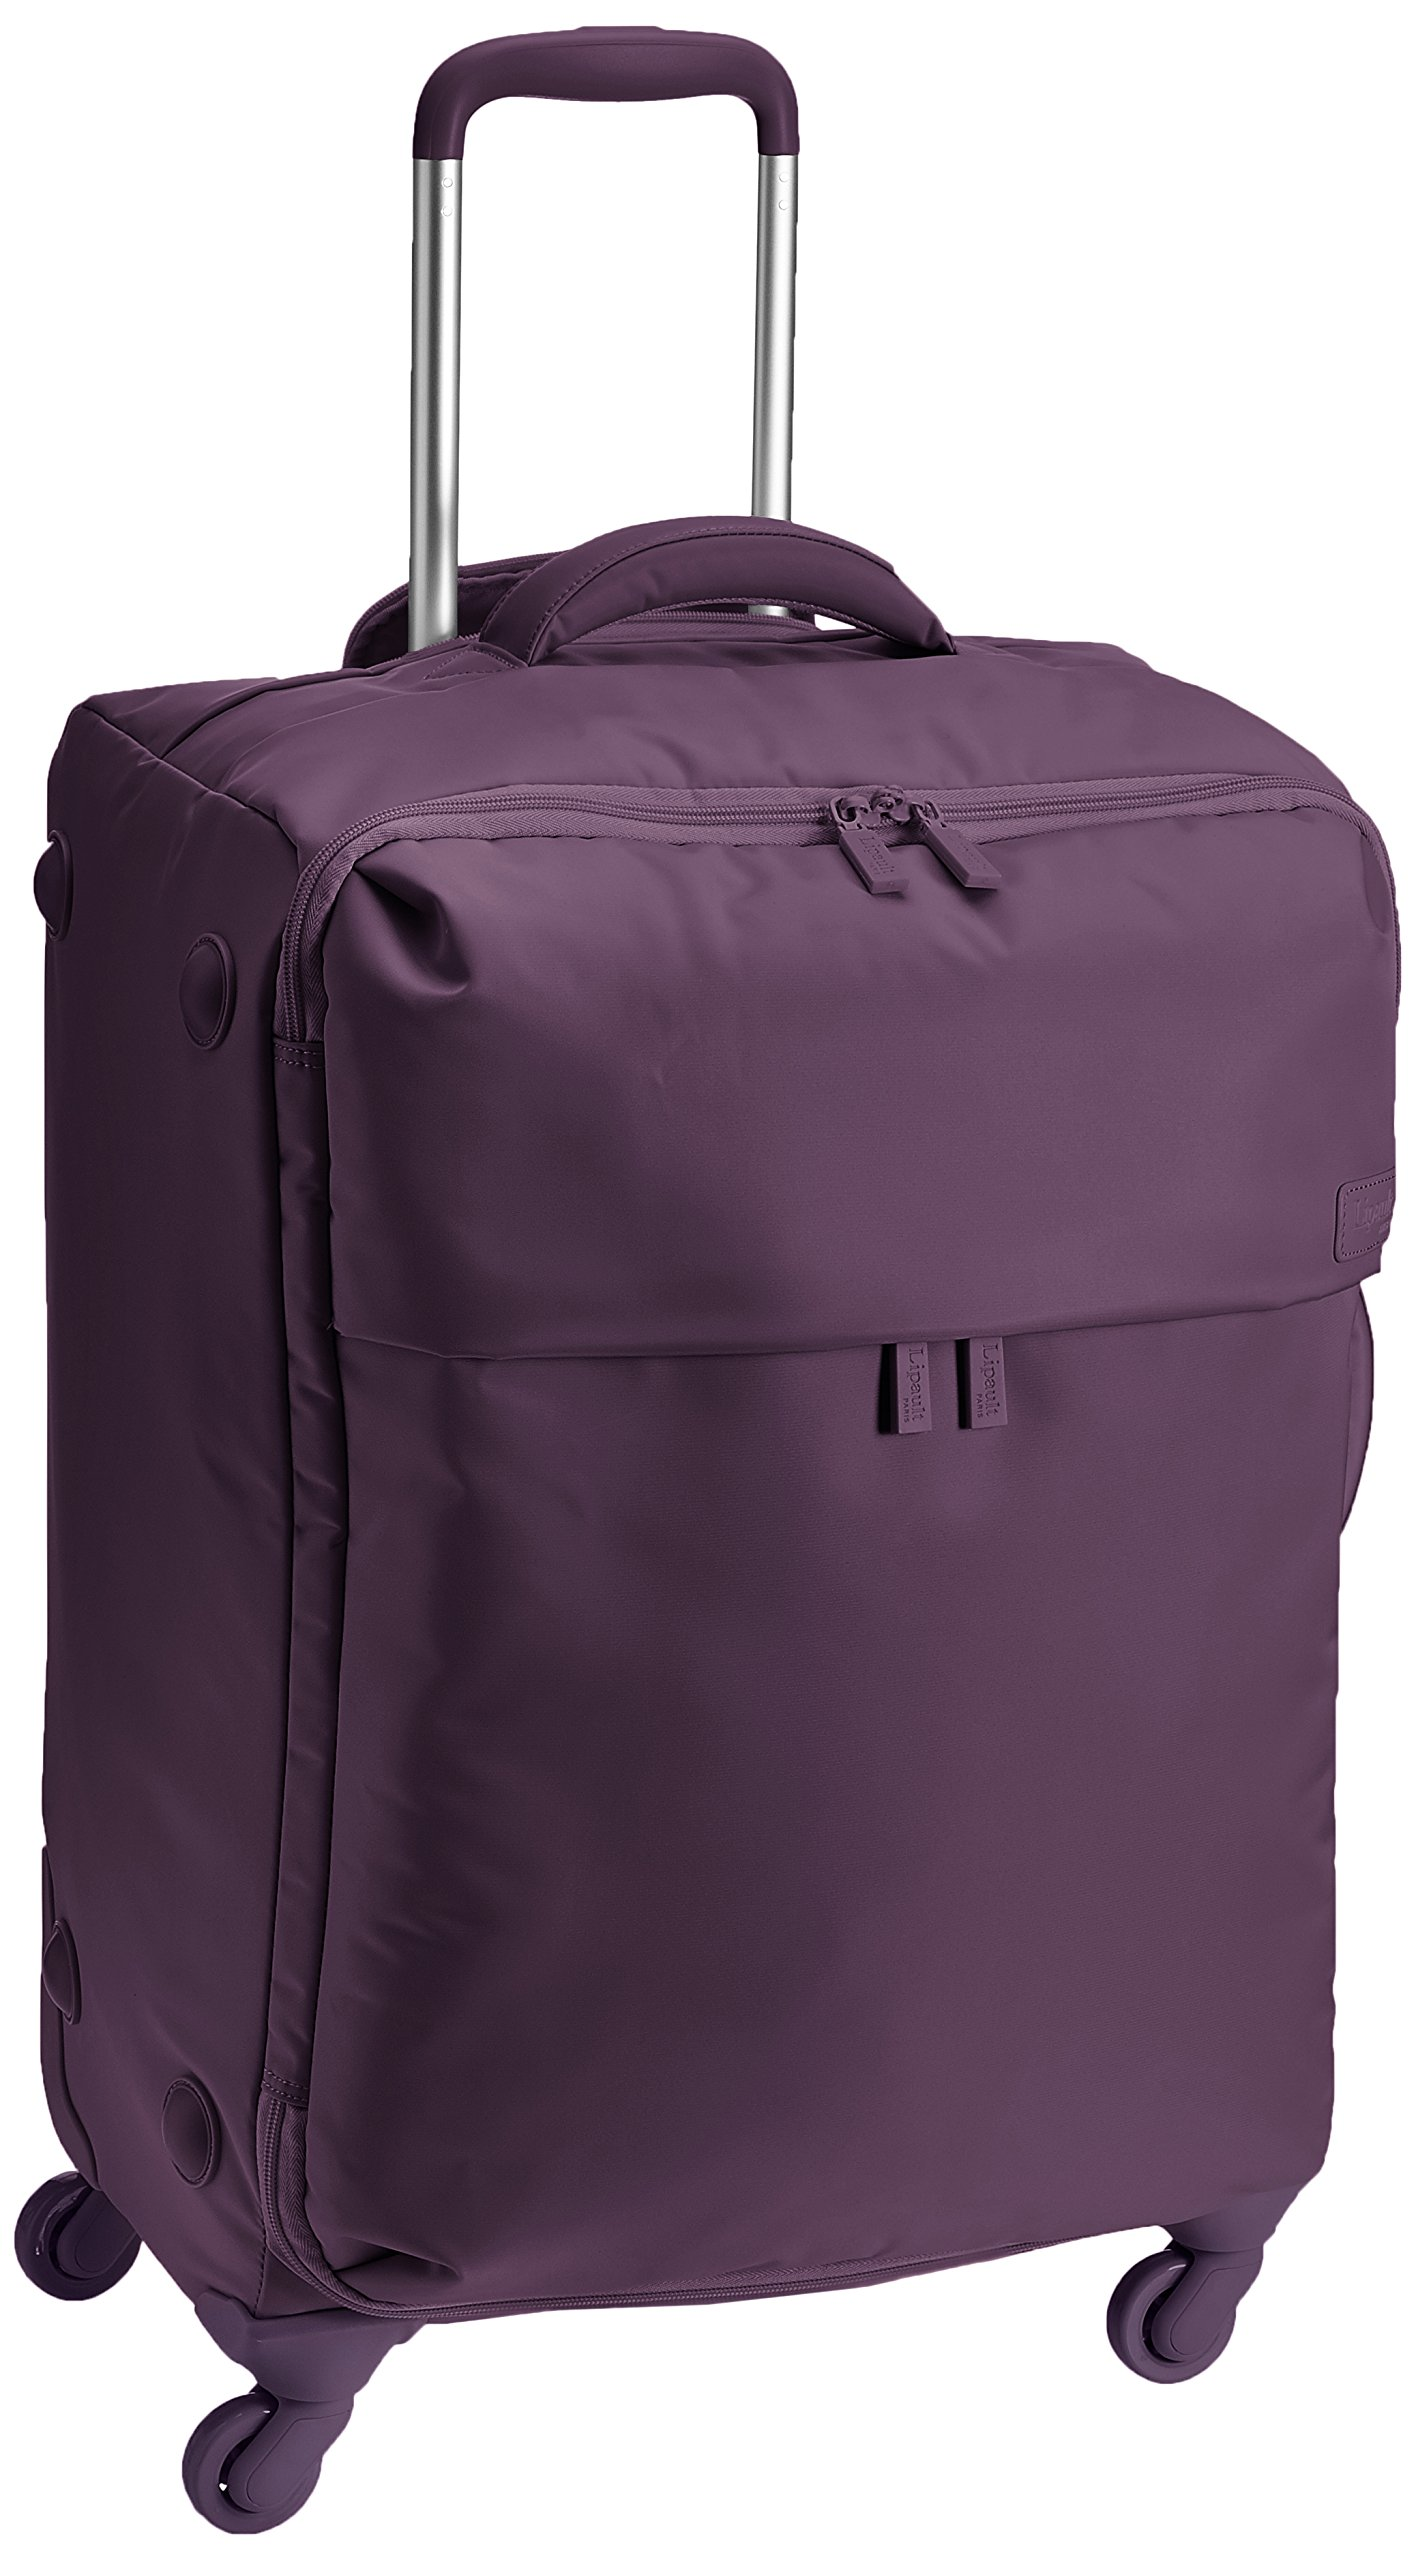 Lipault 4-Wheeled 25 Inch Packing Case, Purple, One Size